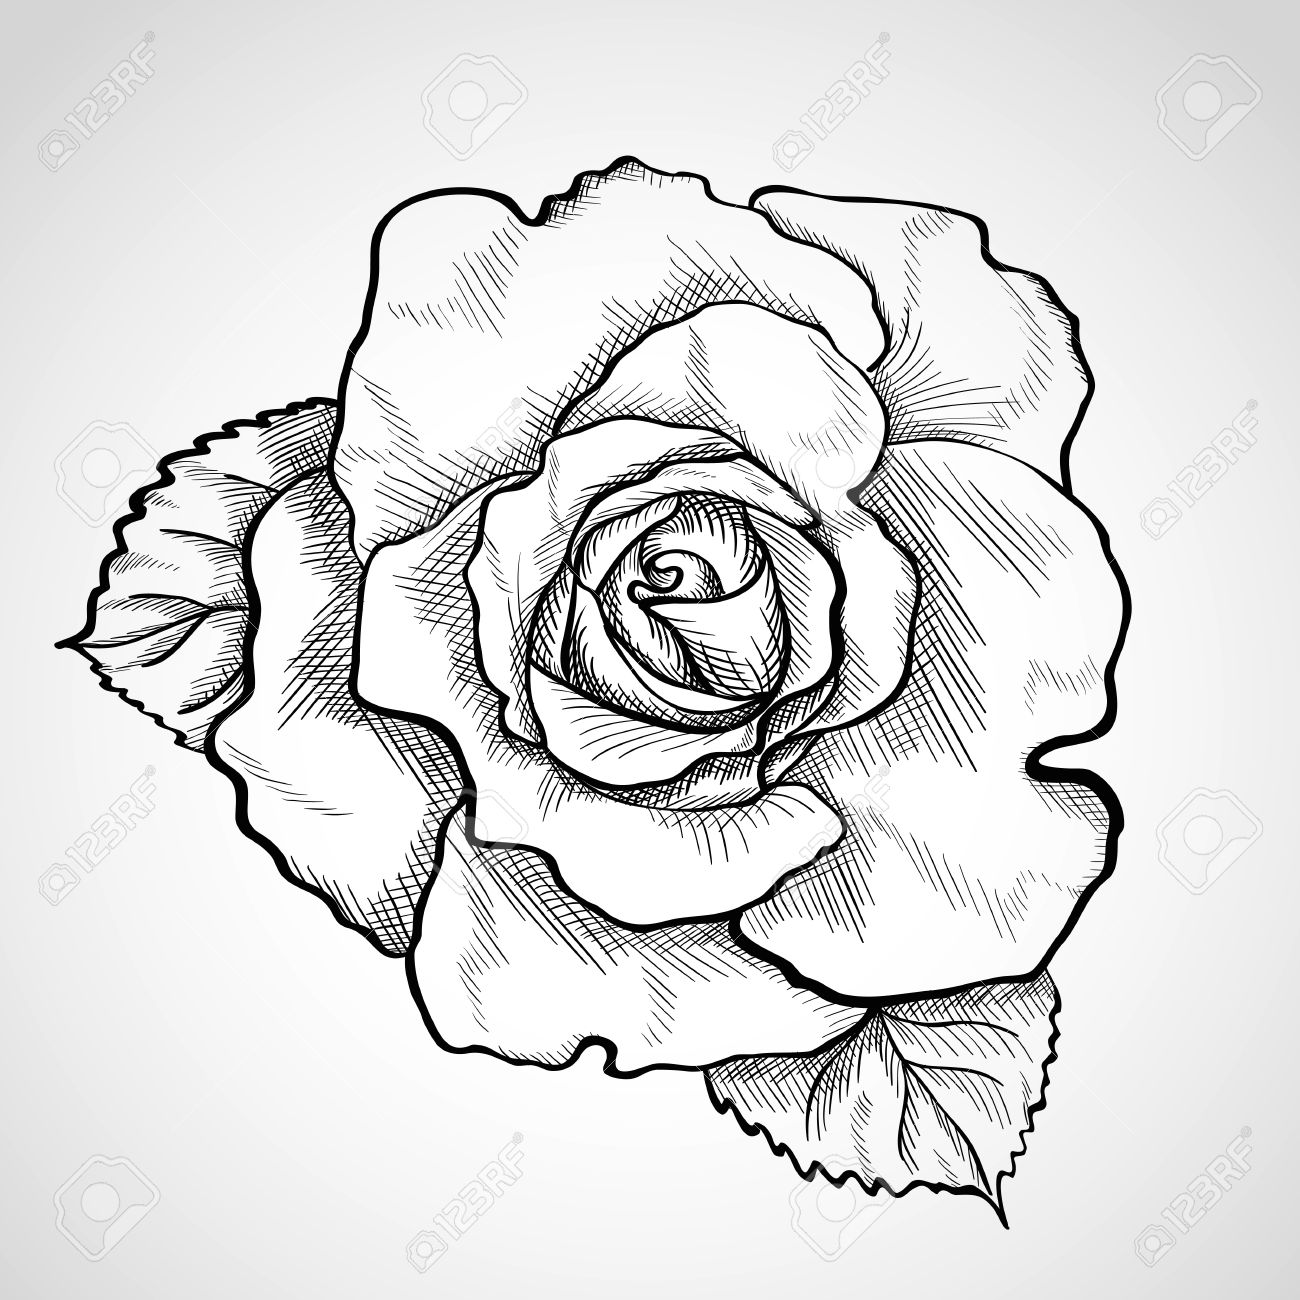 1300x1300 Hoontoidly Rose Drawings In Pencil Outline Images